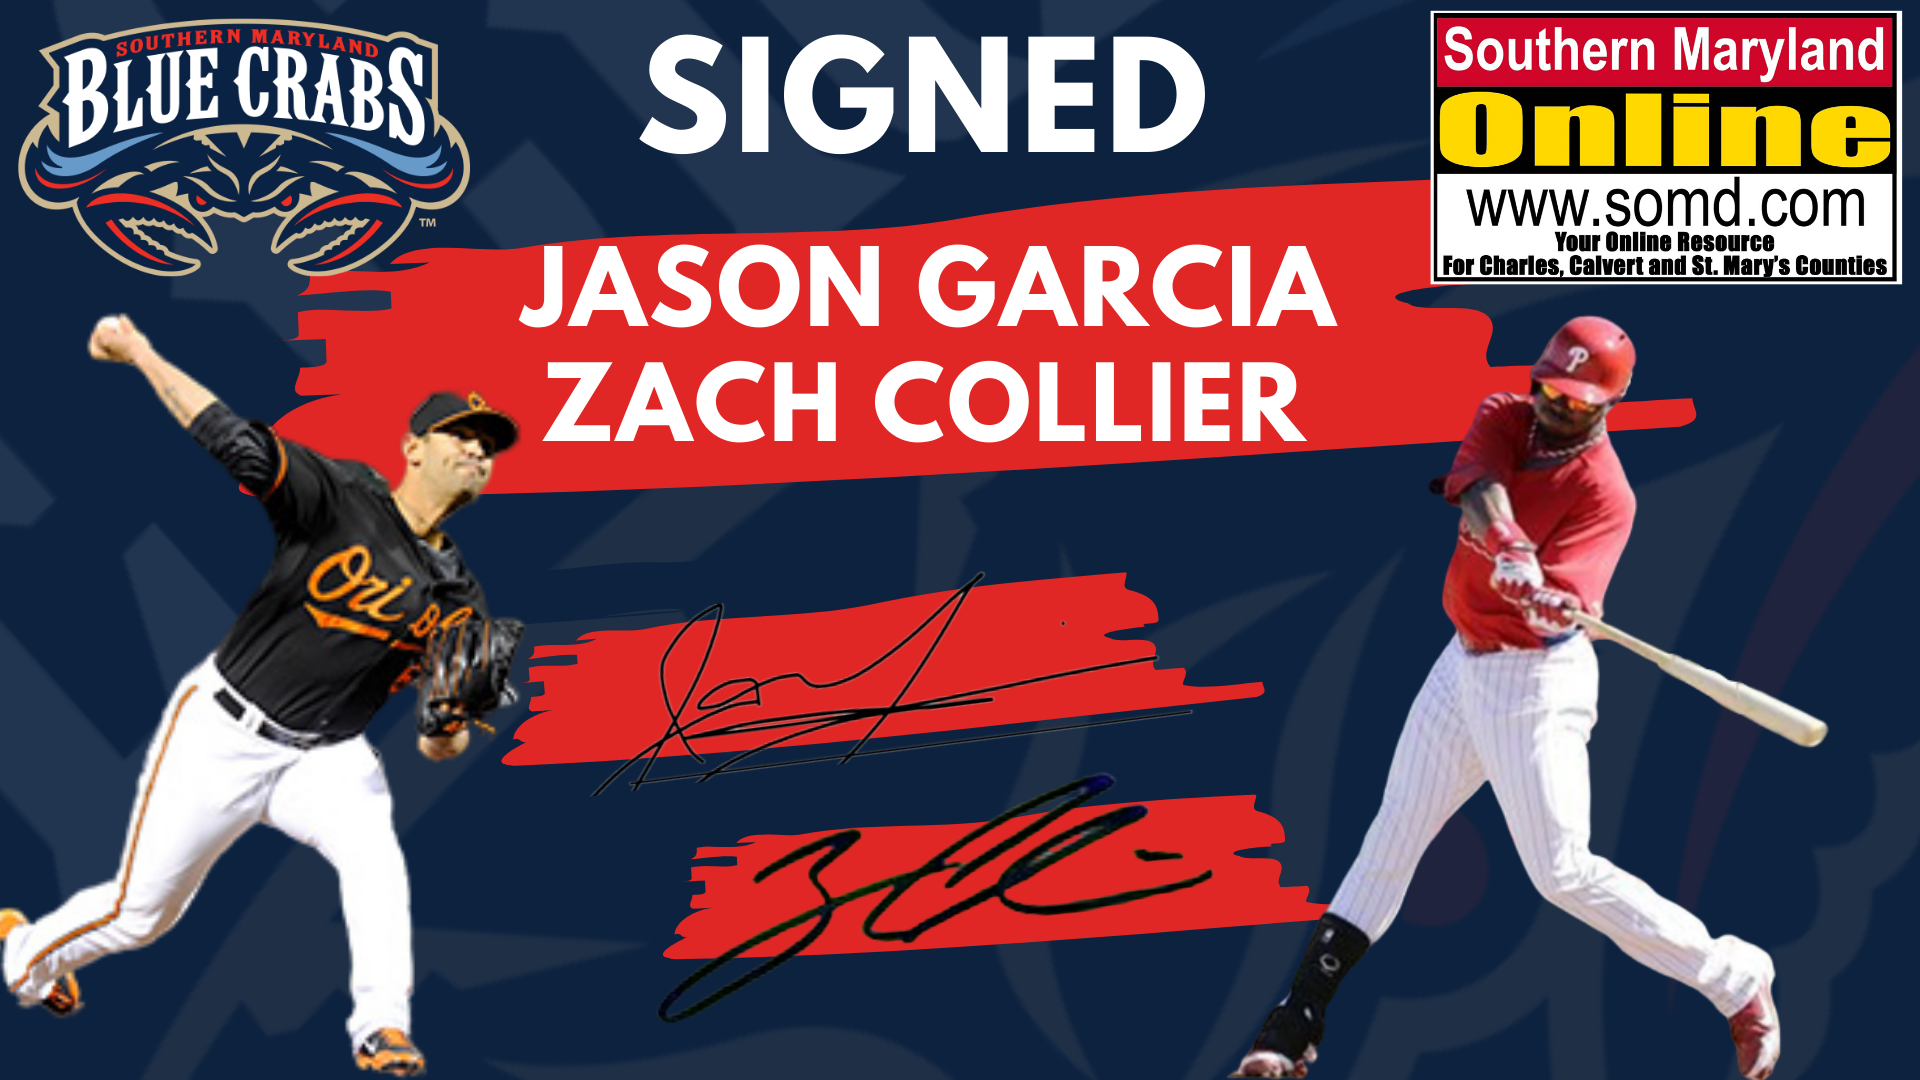 Former Oriole Jason Garcia, Outfielder Zach Collier Sign With Blue Crabs